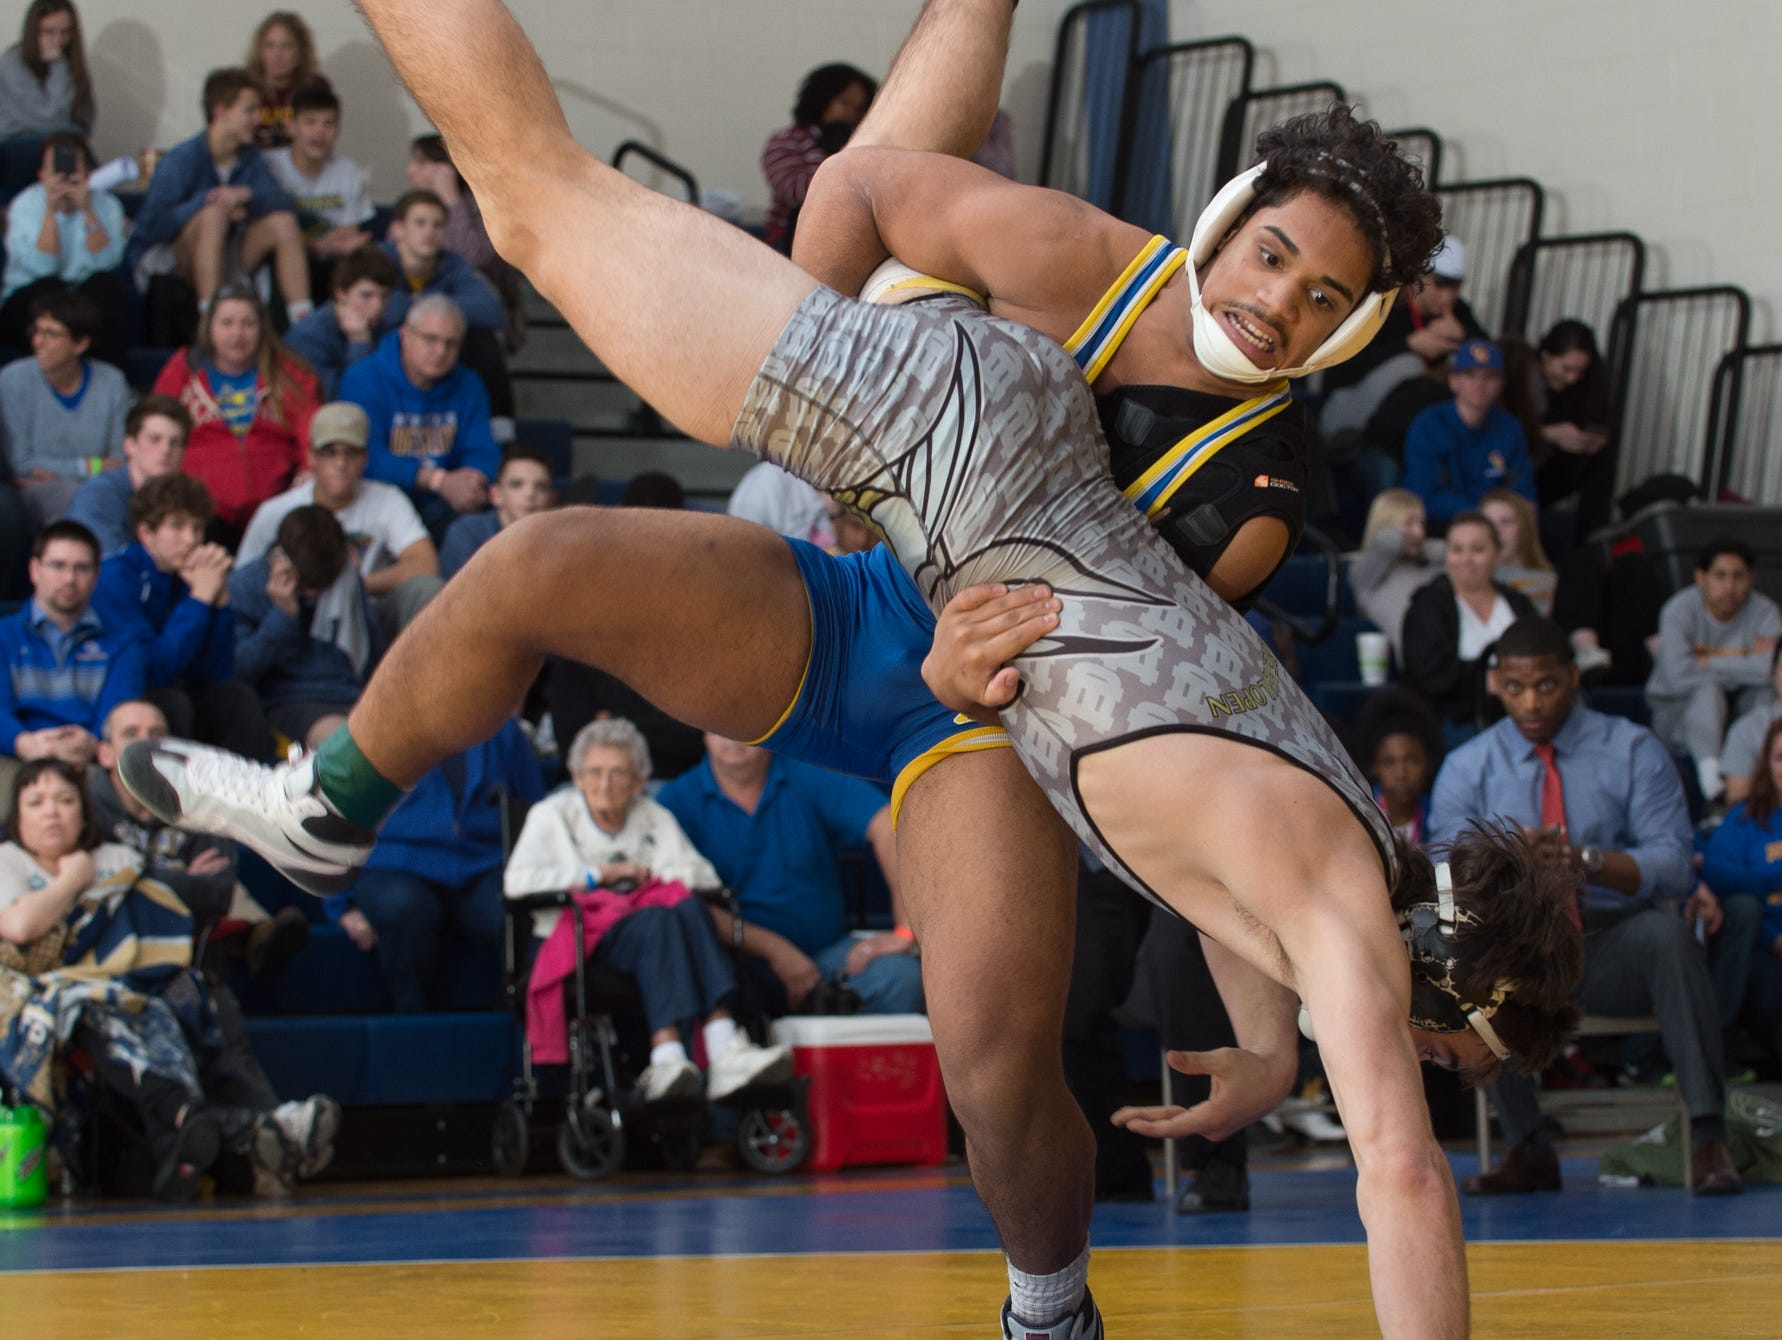 Sussex Central's Brandon Bautista lifts Cape Henlopen's Cory Lawson off the mat in the 160 pound championship match at the Henlopen Conference wrestling tournament at Sussex Central High School.